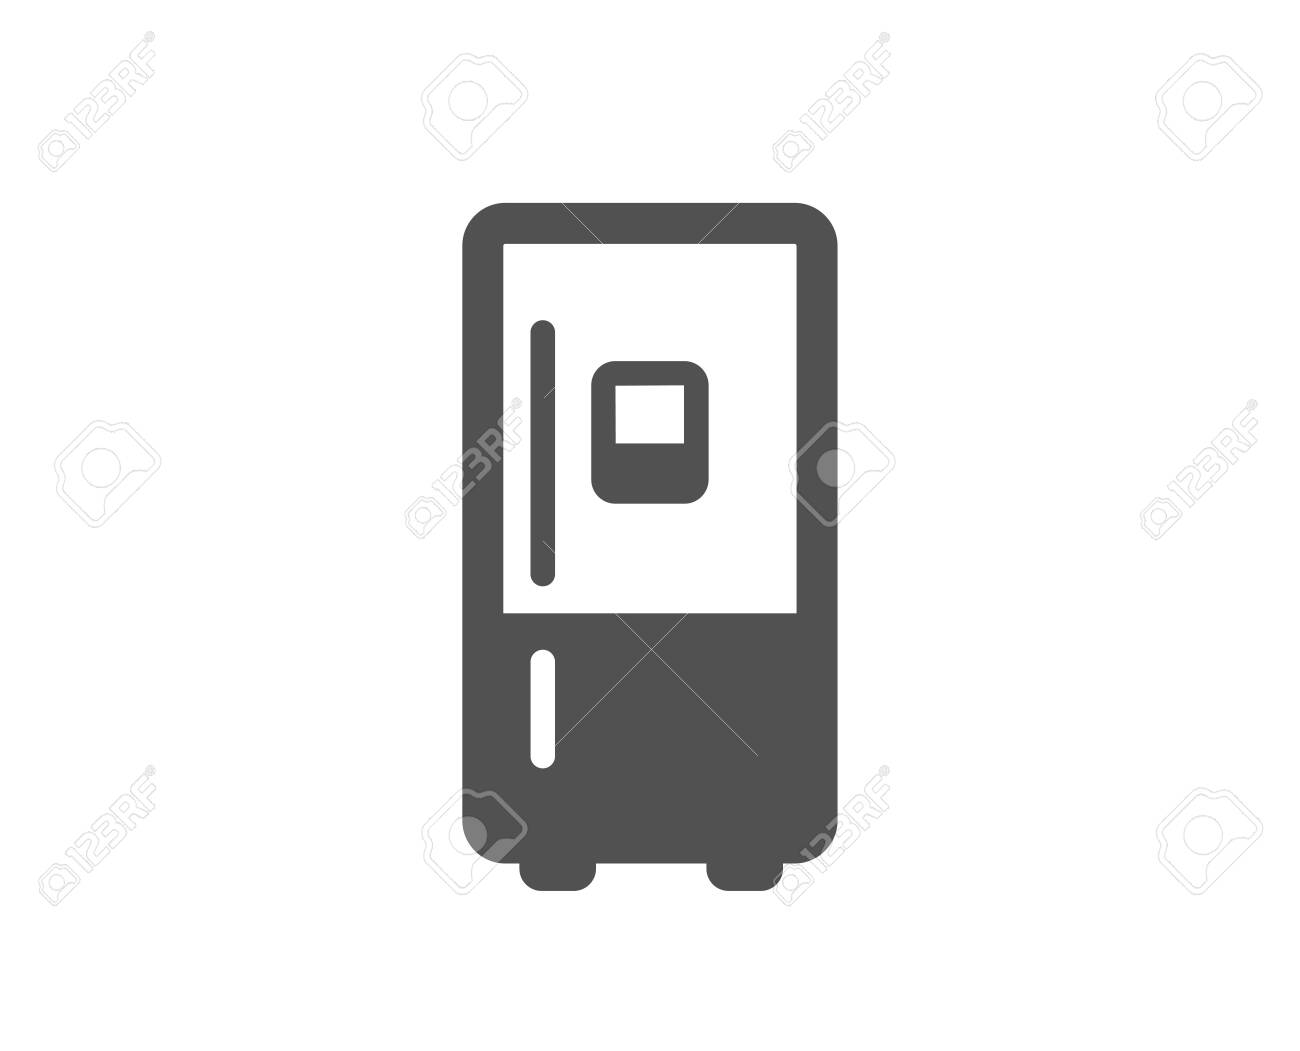 Refrigerator With Ice Maker Icon Fridge Sign Freezer Storage Royalty Free Cliparts Vectors And Stock Illustration Image 147203868